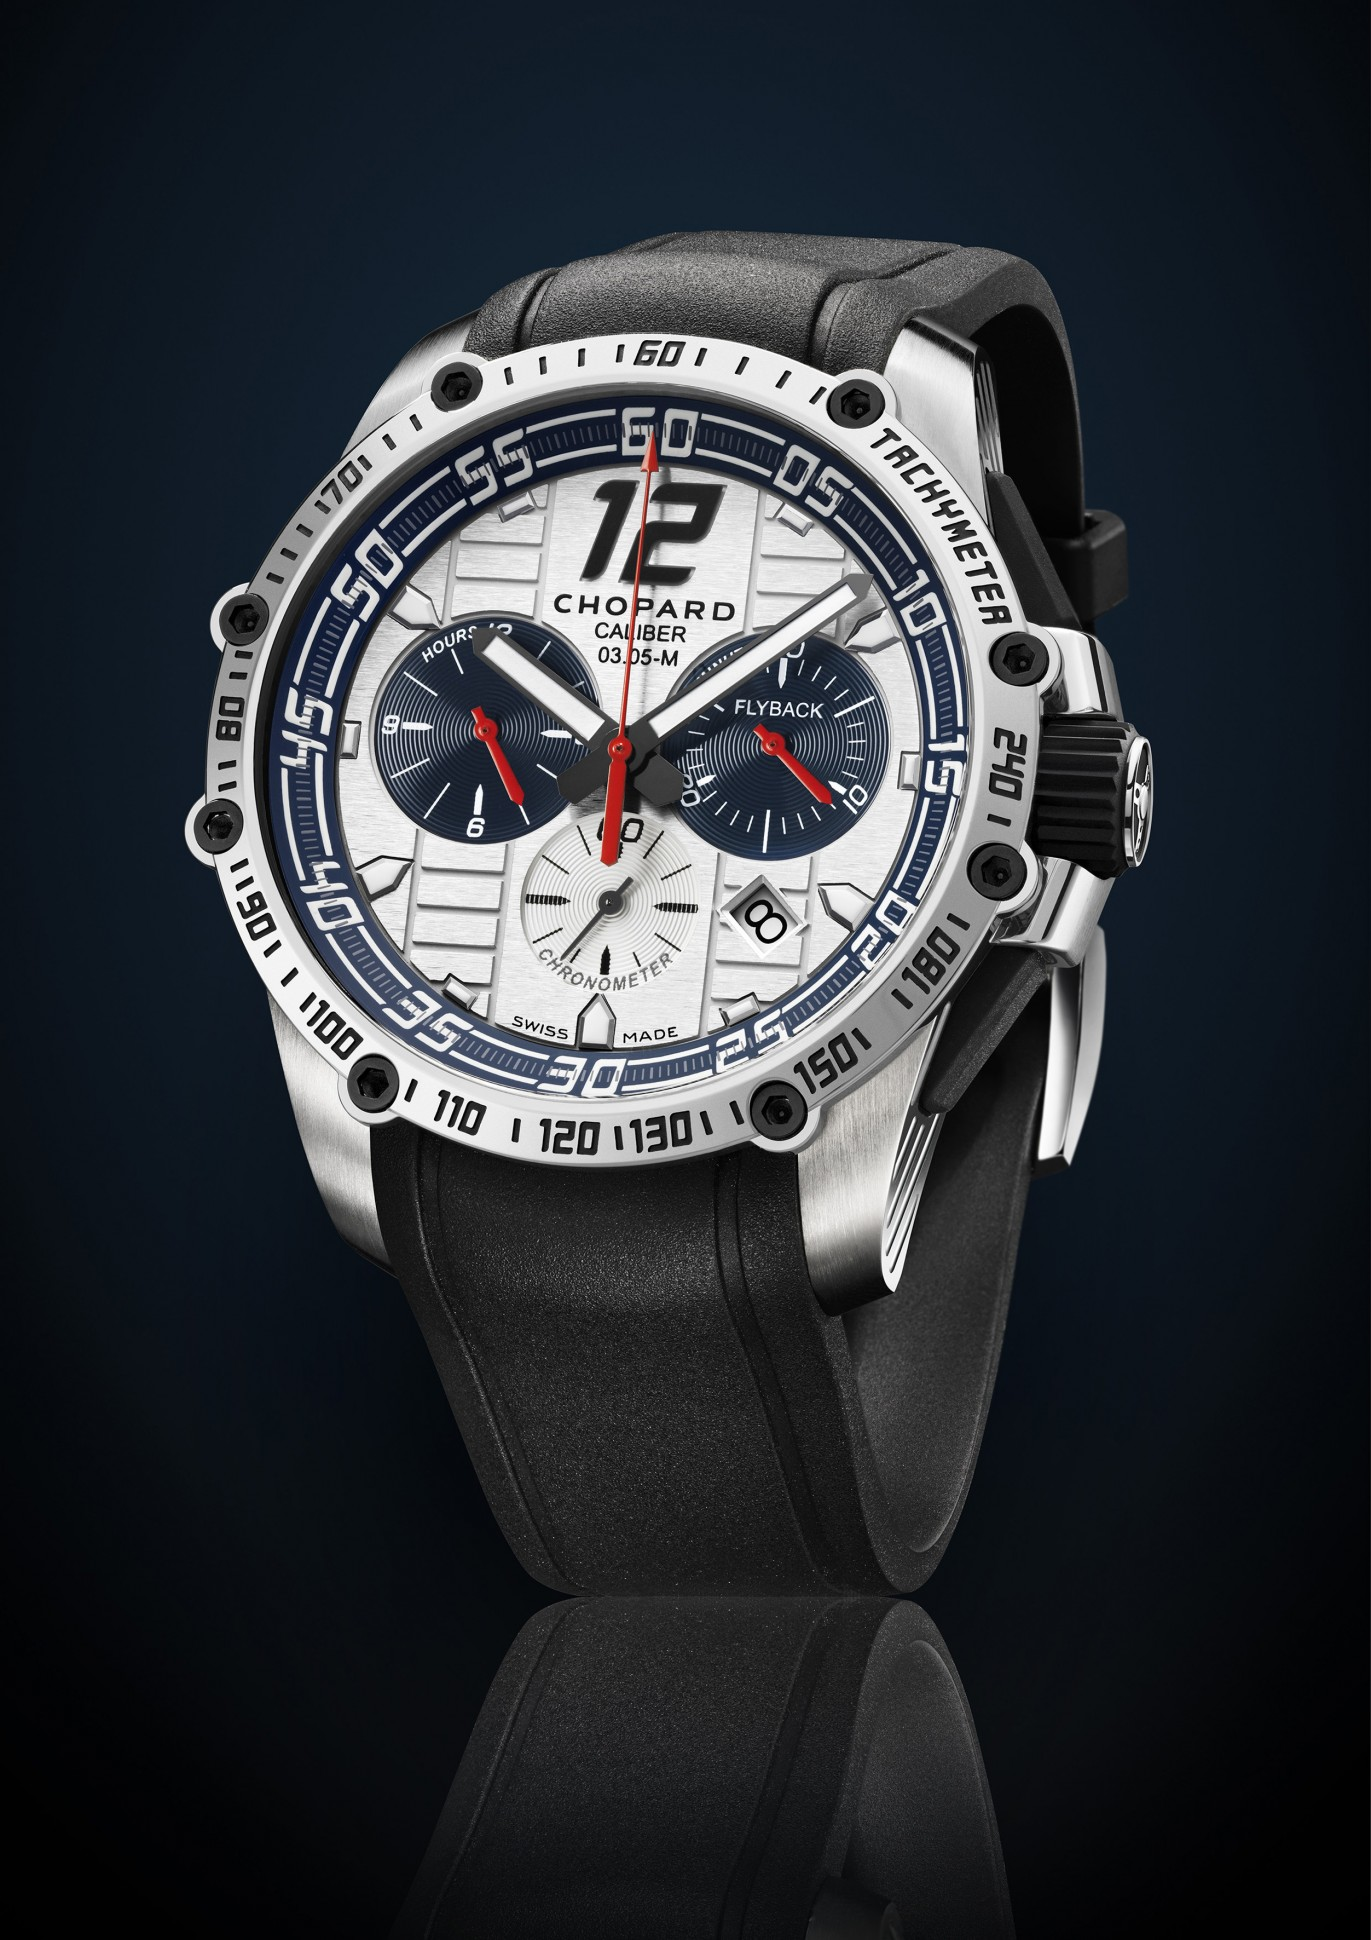 Introducing the Chopard Superfast Chrono Porsche 919 Jacky Ickx Edition Replica Men's Watch